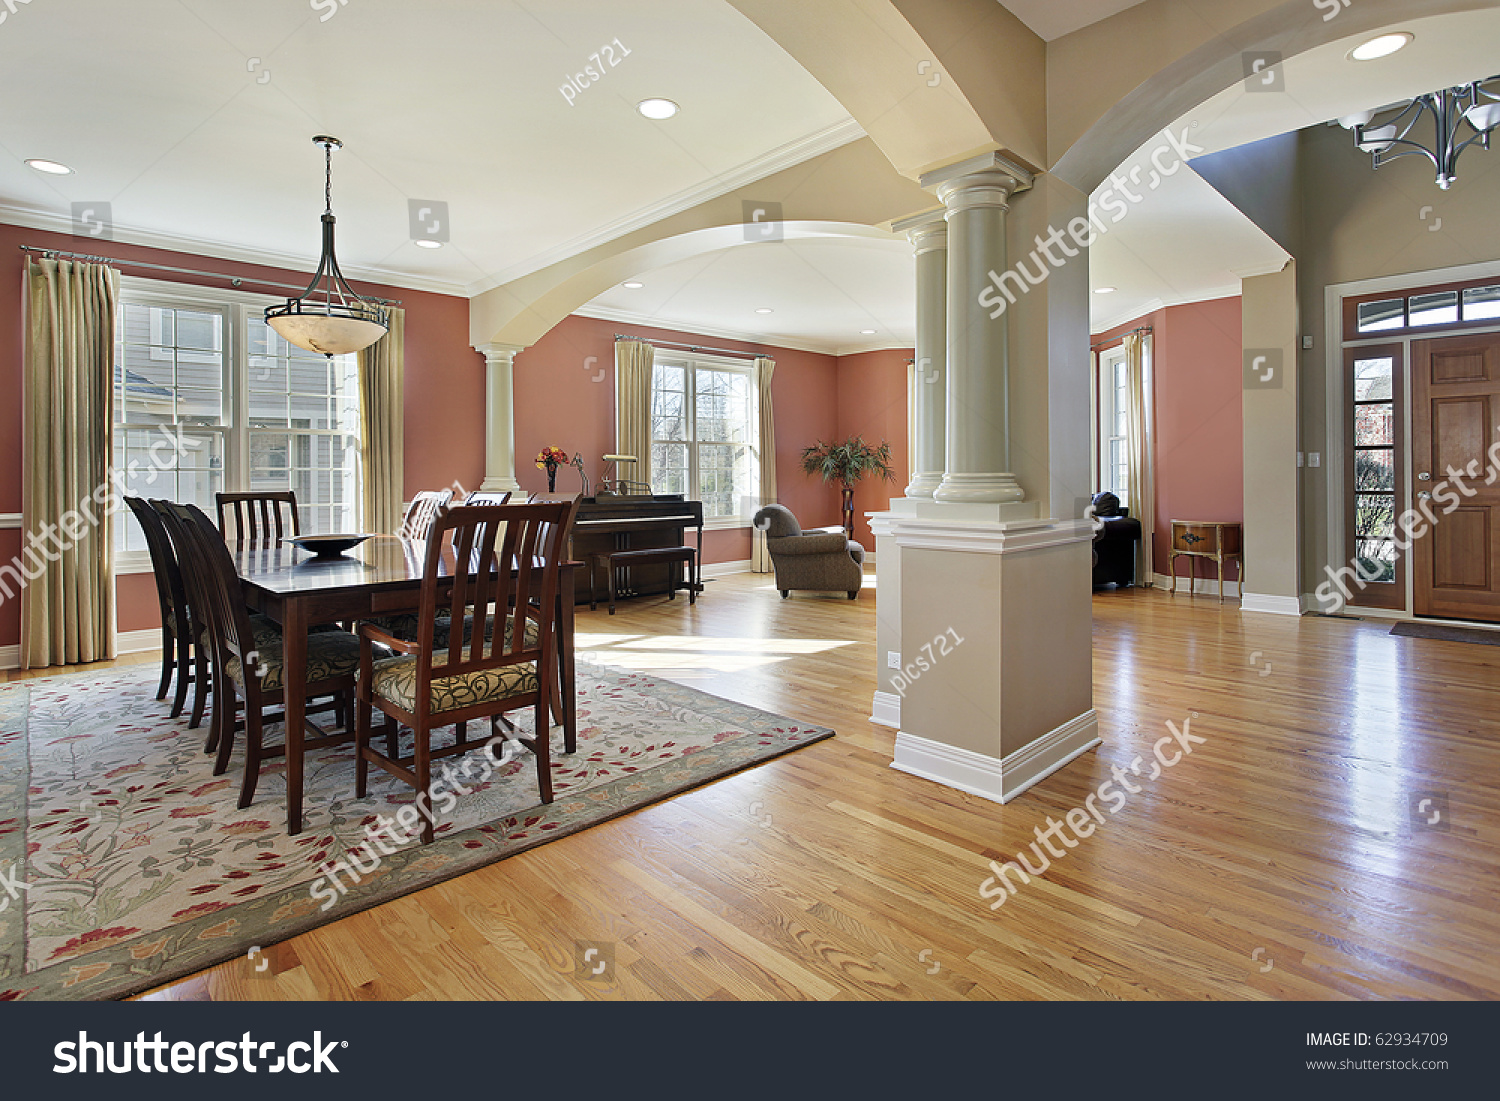 Dining Room Open Floor Plan Foyer Stock Photo 62934709  : stock photo dining room in open floor plan with foyer view 62934709 from www.shutterstock.com size 1500 x 1101 jpeg 715kB